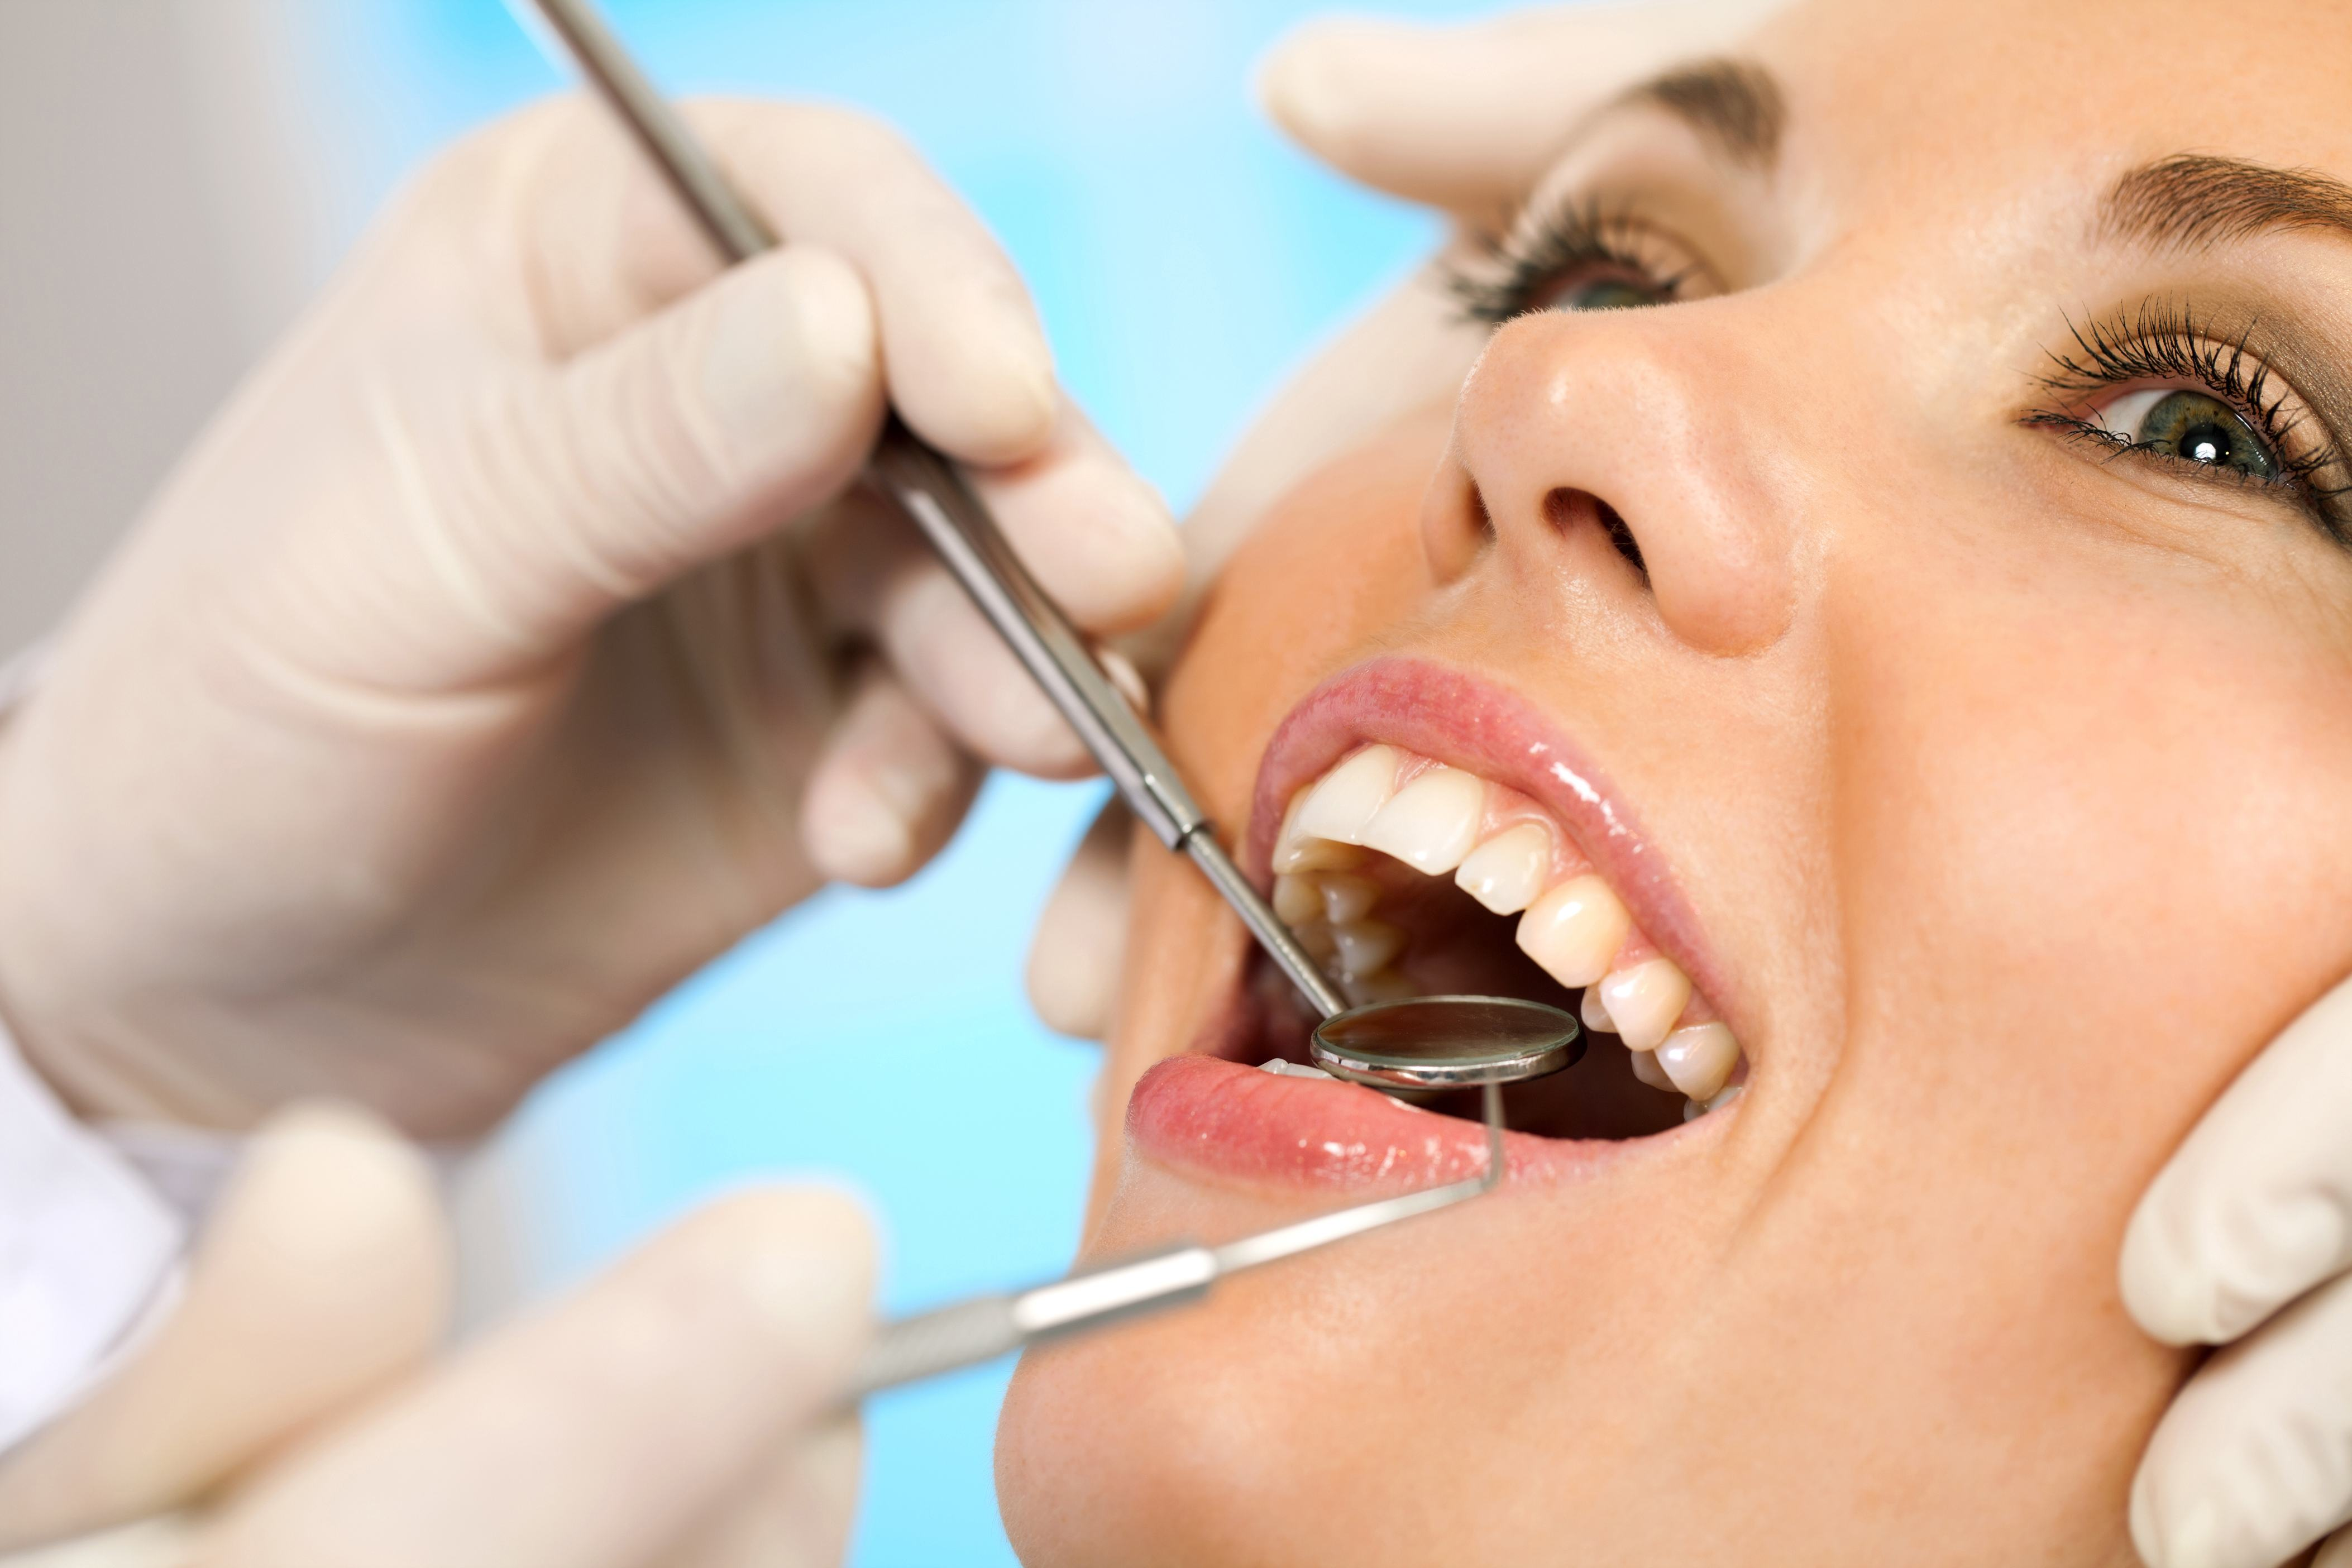 Affordable Orthodontic Dental Care - Should You Have One?